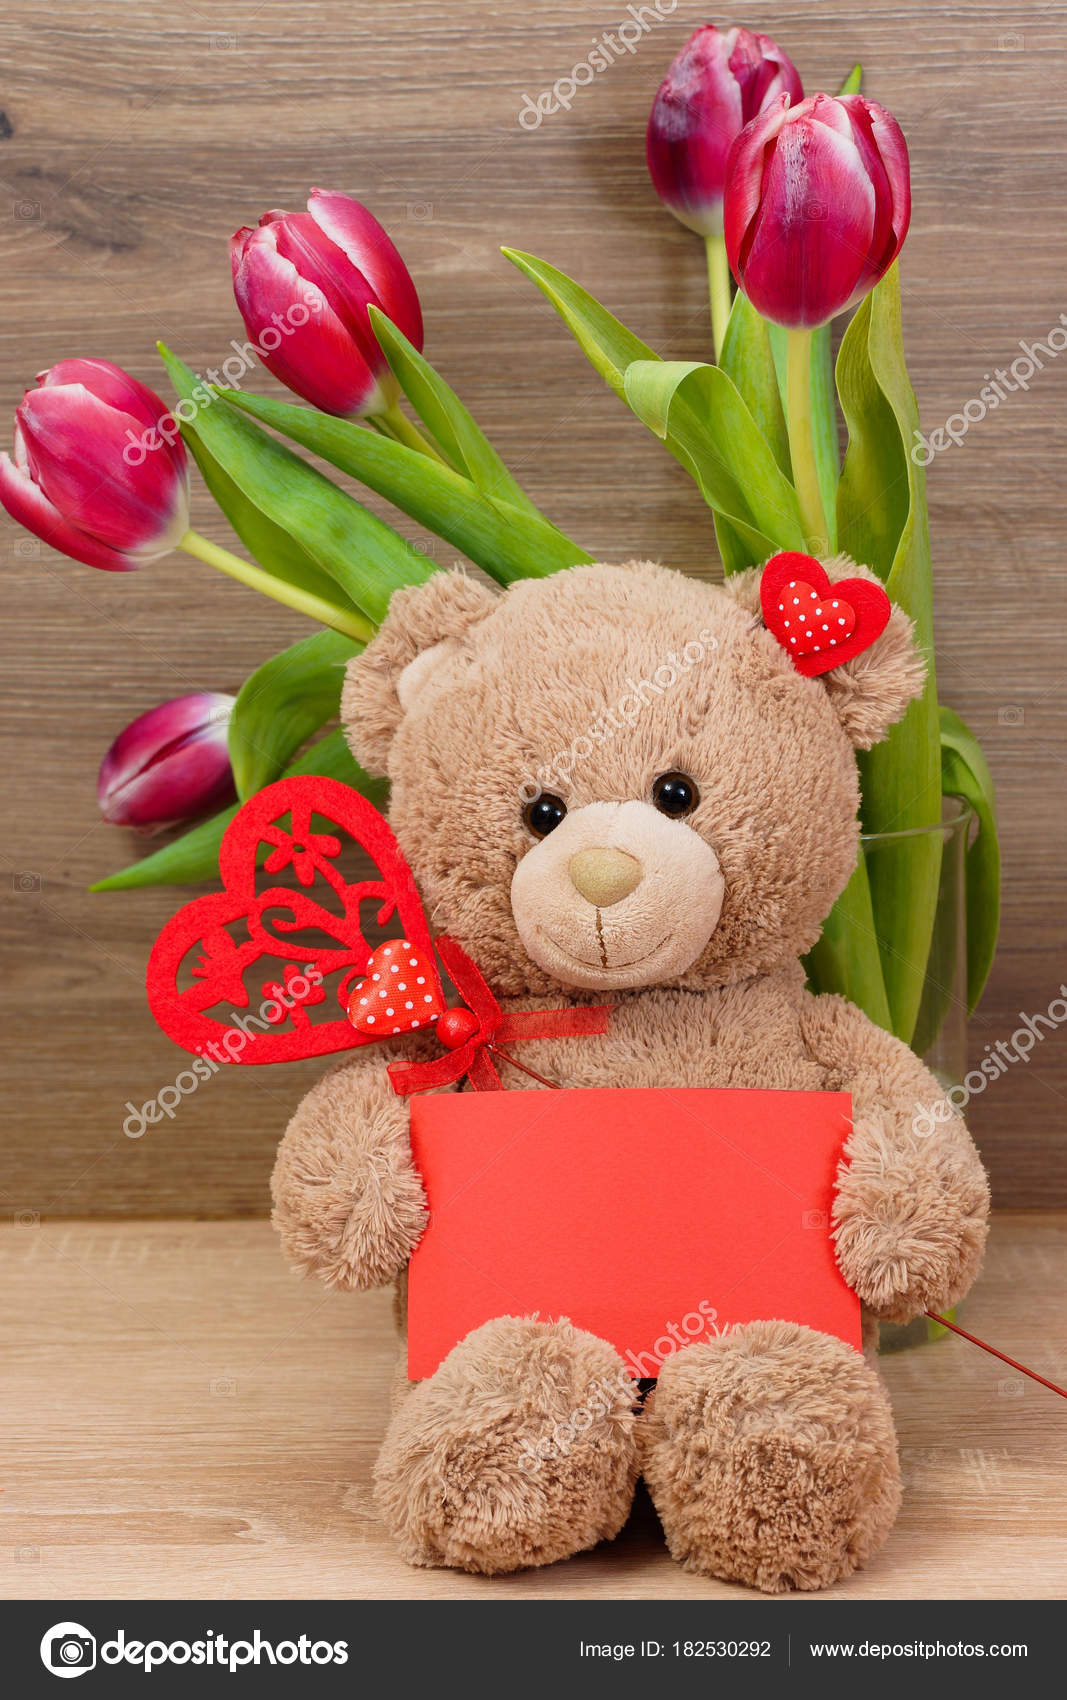 Postcard Teddy Bear Tulips Valentine Day Birthday Mothers Day